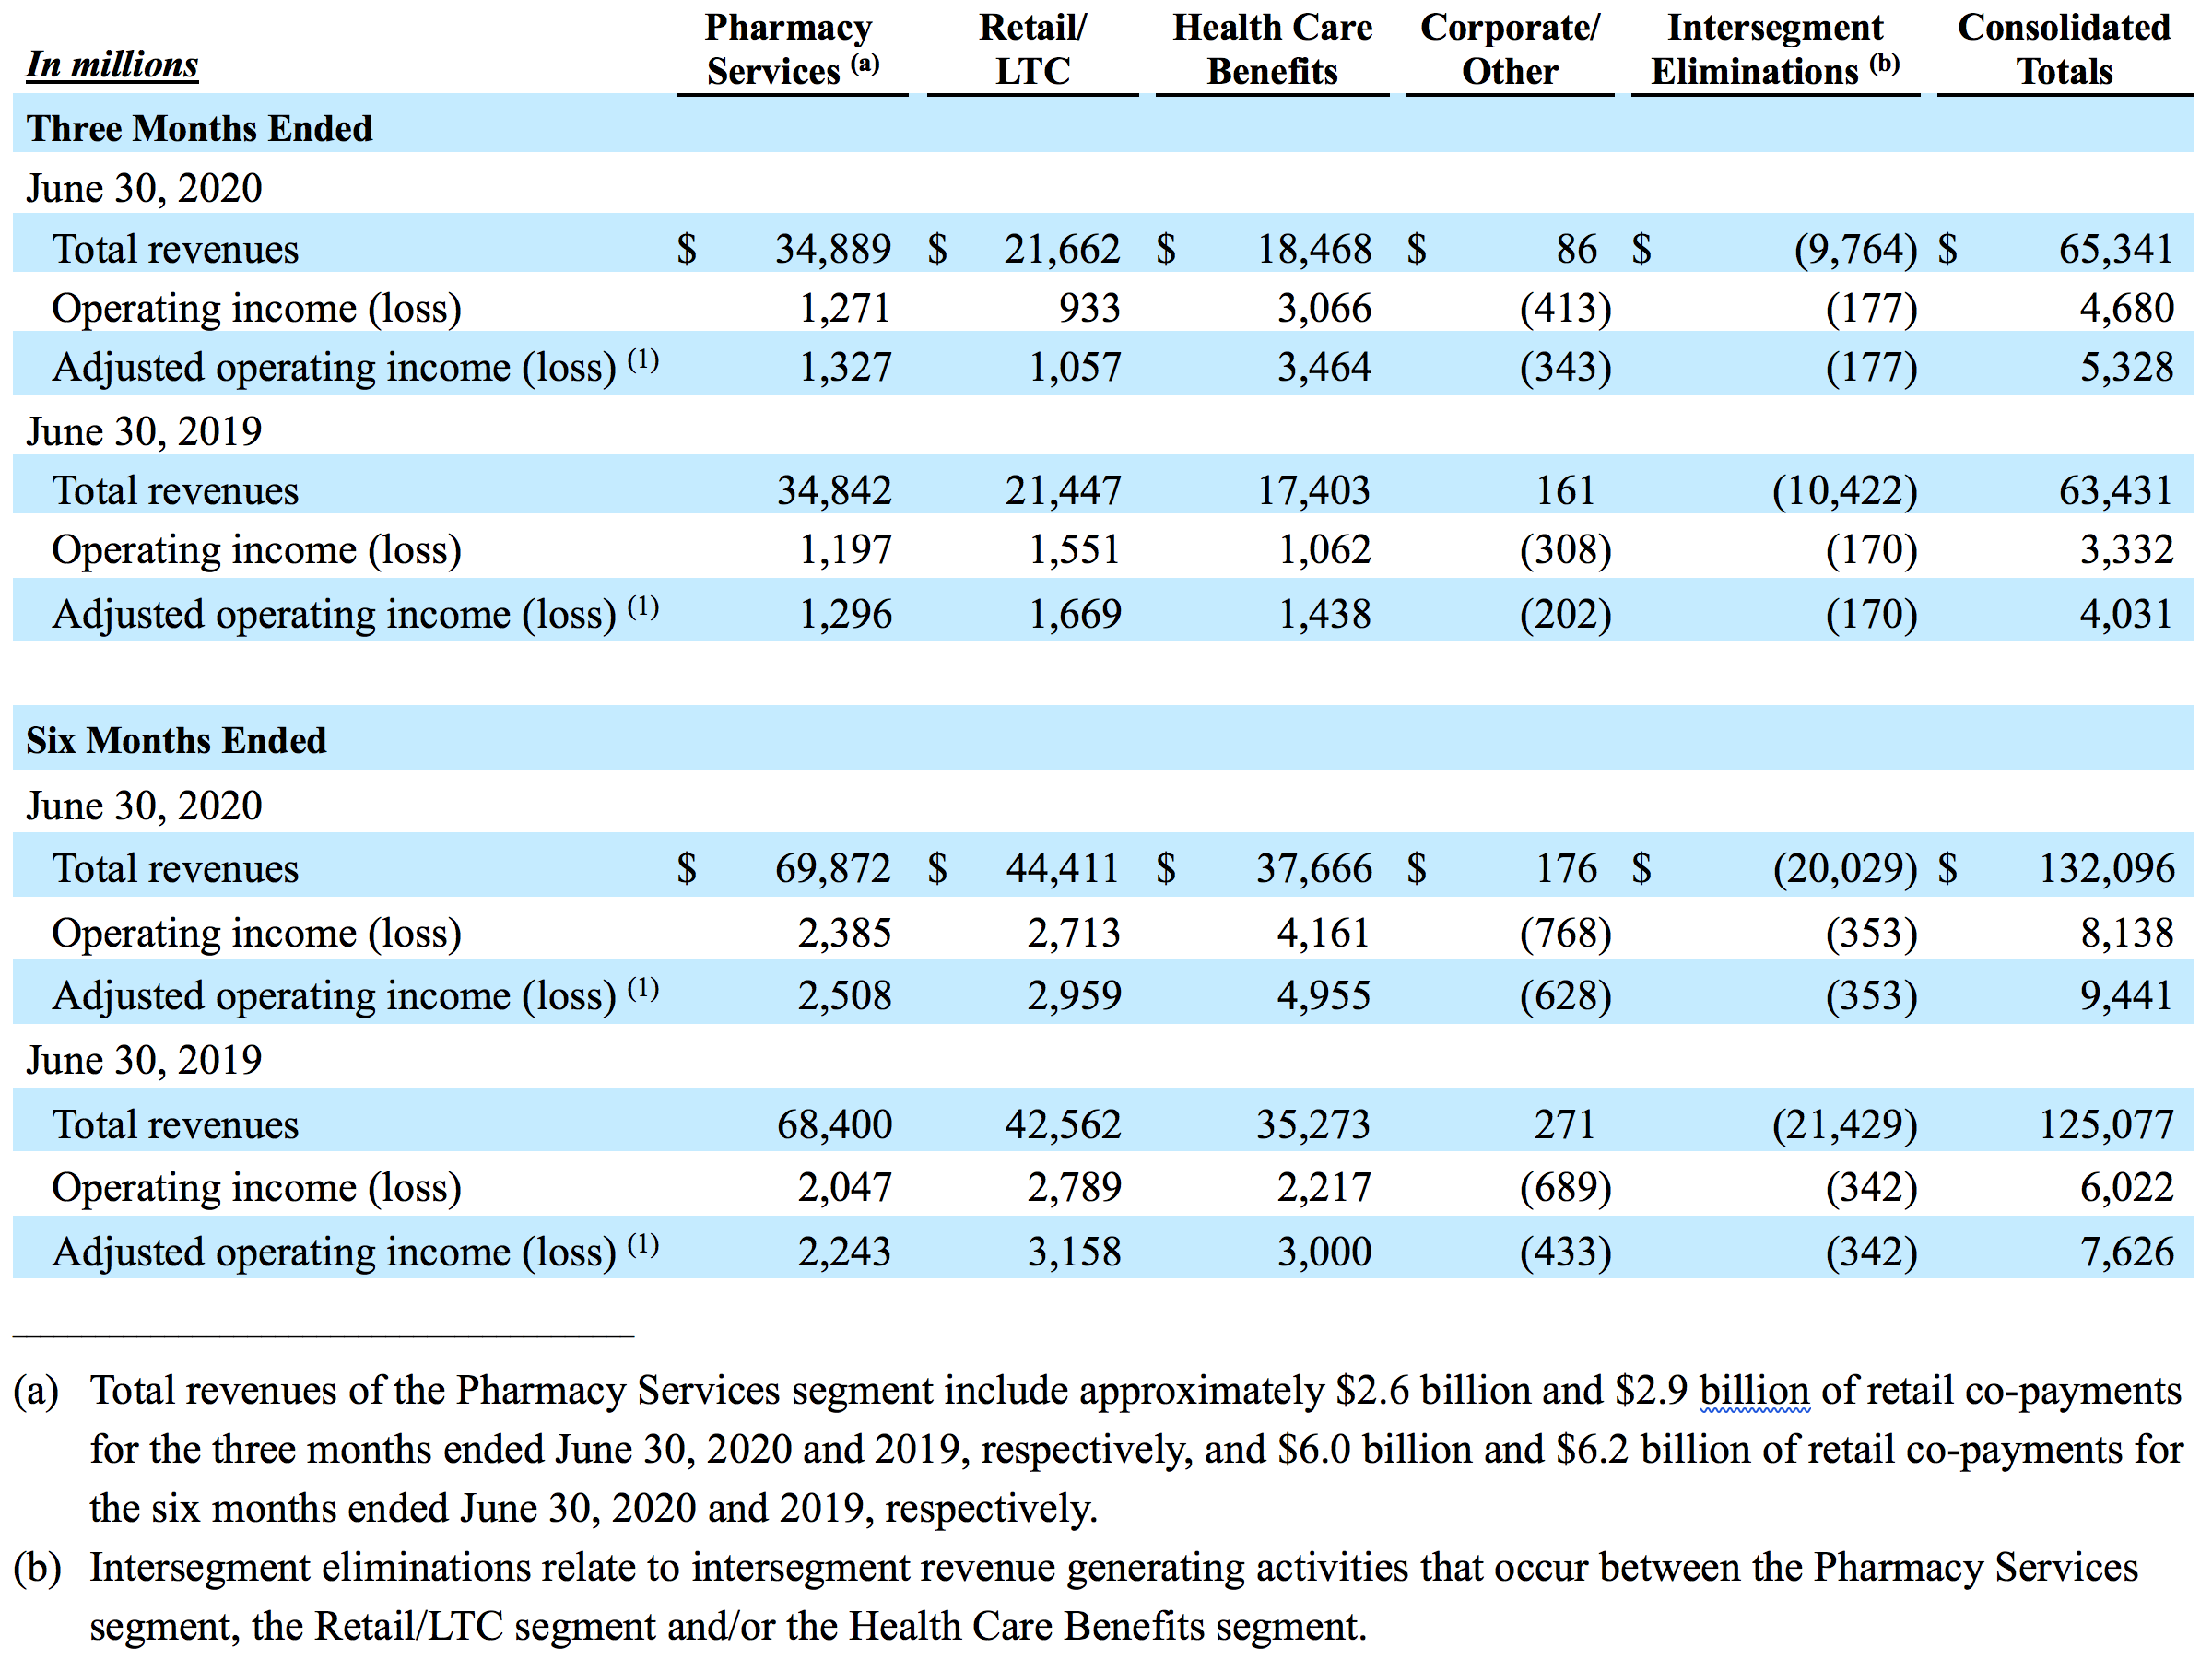 Table showing reconciliation of financial measures of the Company's segments to the consolidated totals